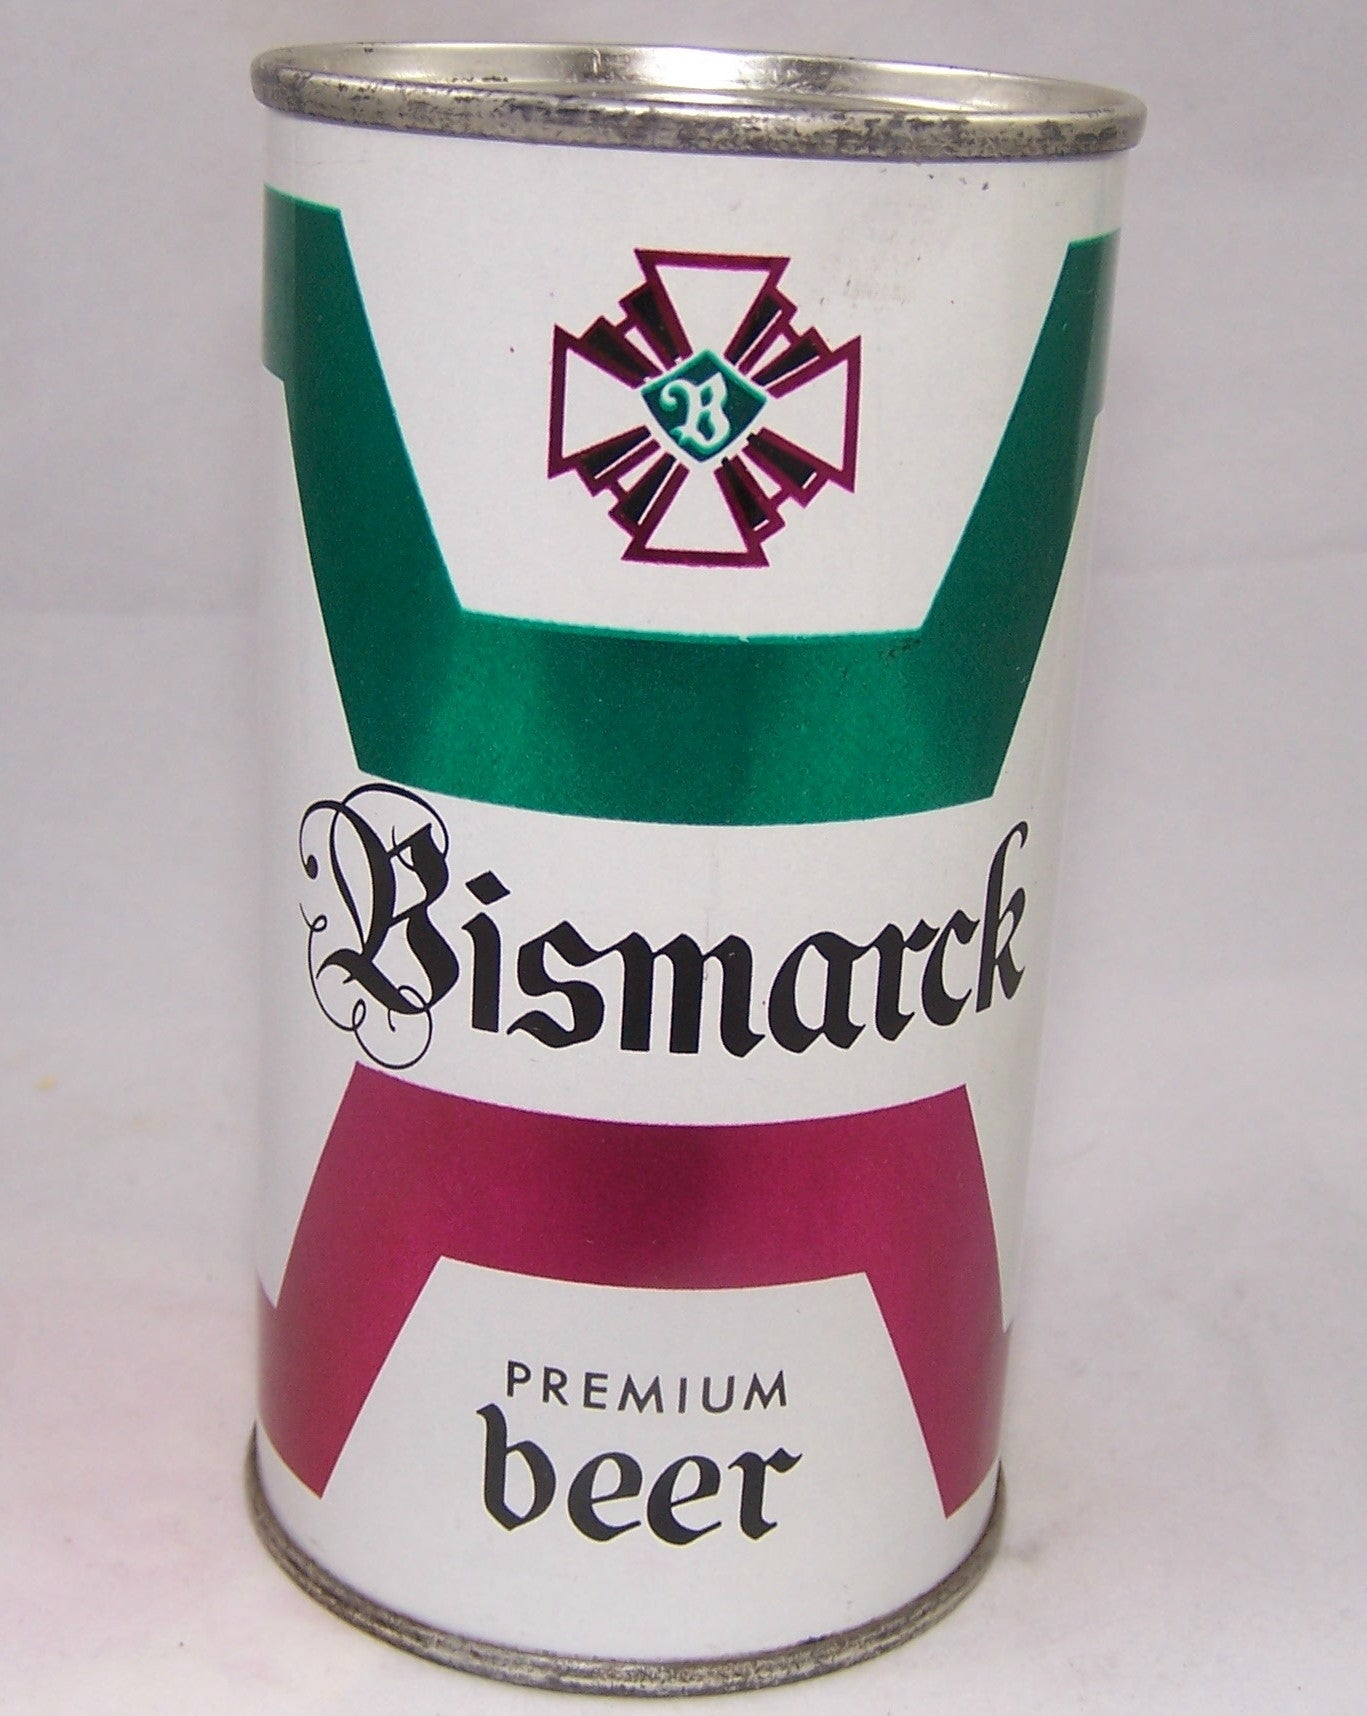 Bismarck Premium Beer, USBC 37-14, Grade A1+ Sold on 07/18/16